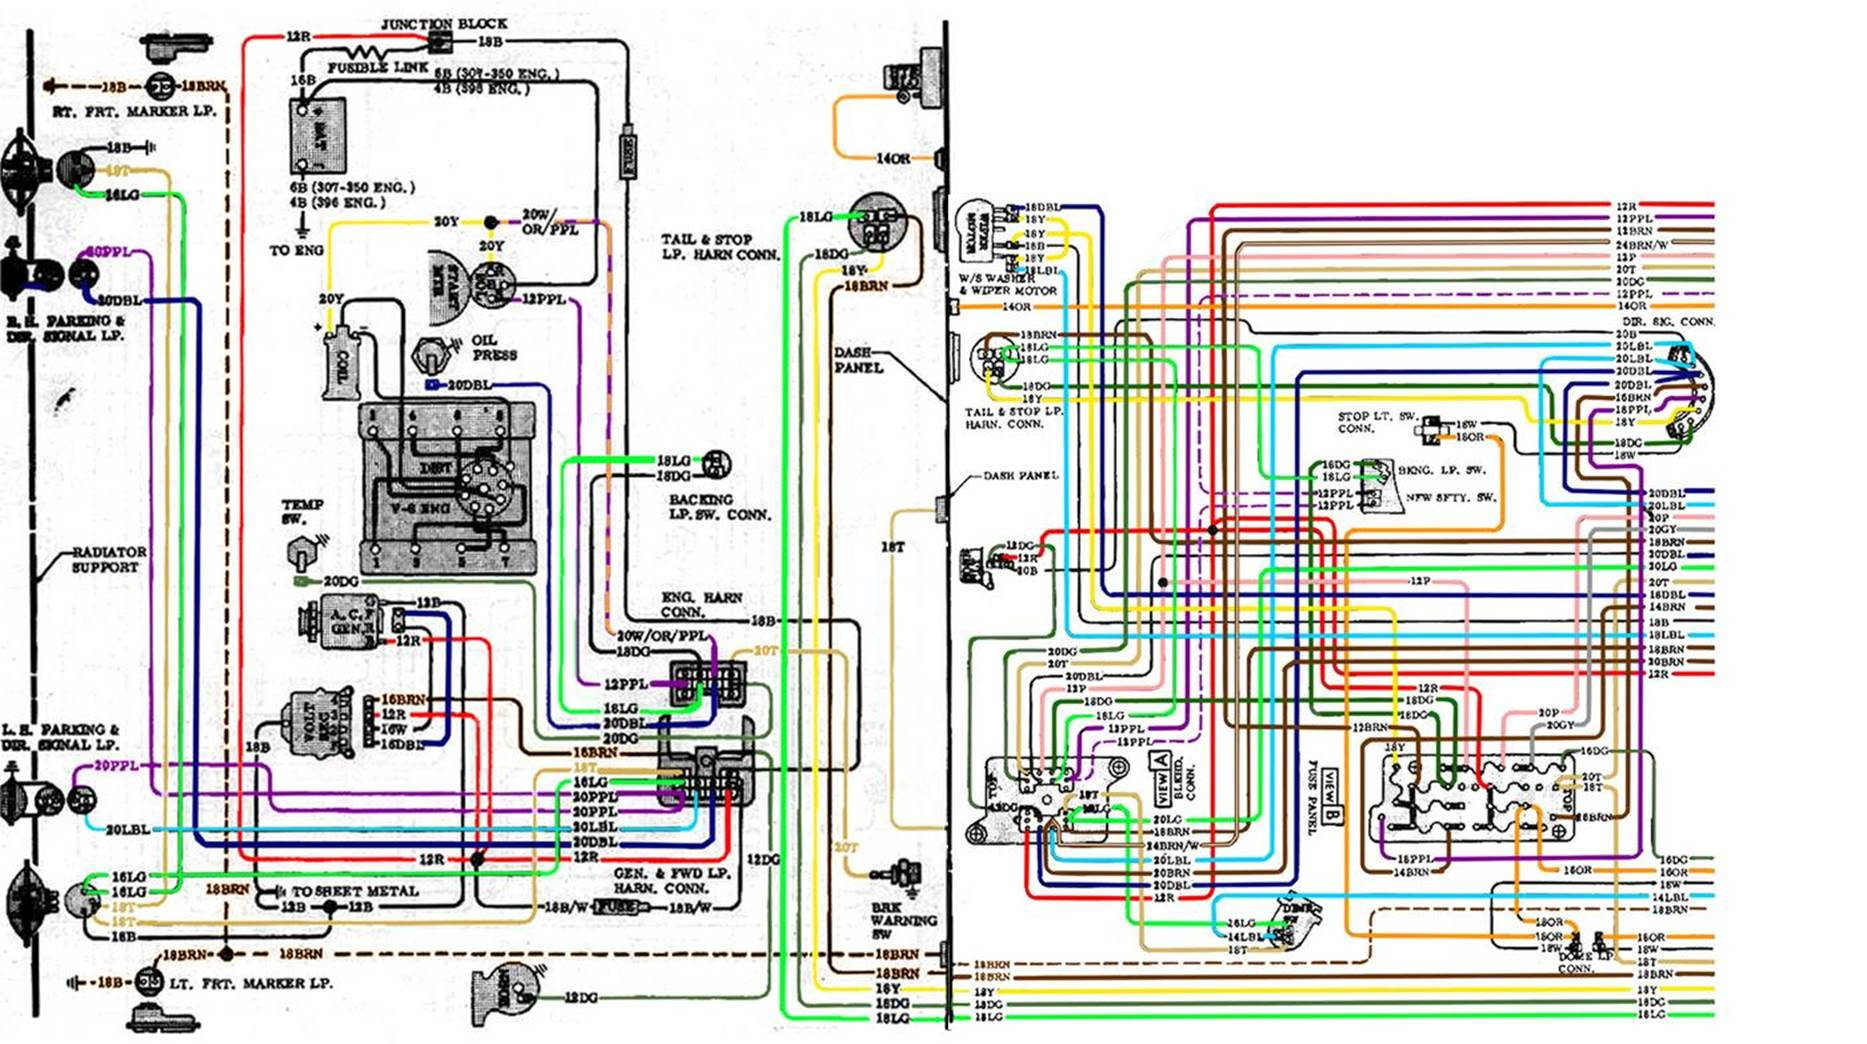 image002 67 72 chevy wiring diagram 1968 chevelle wiring diagram at n-0.co